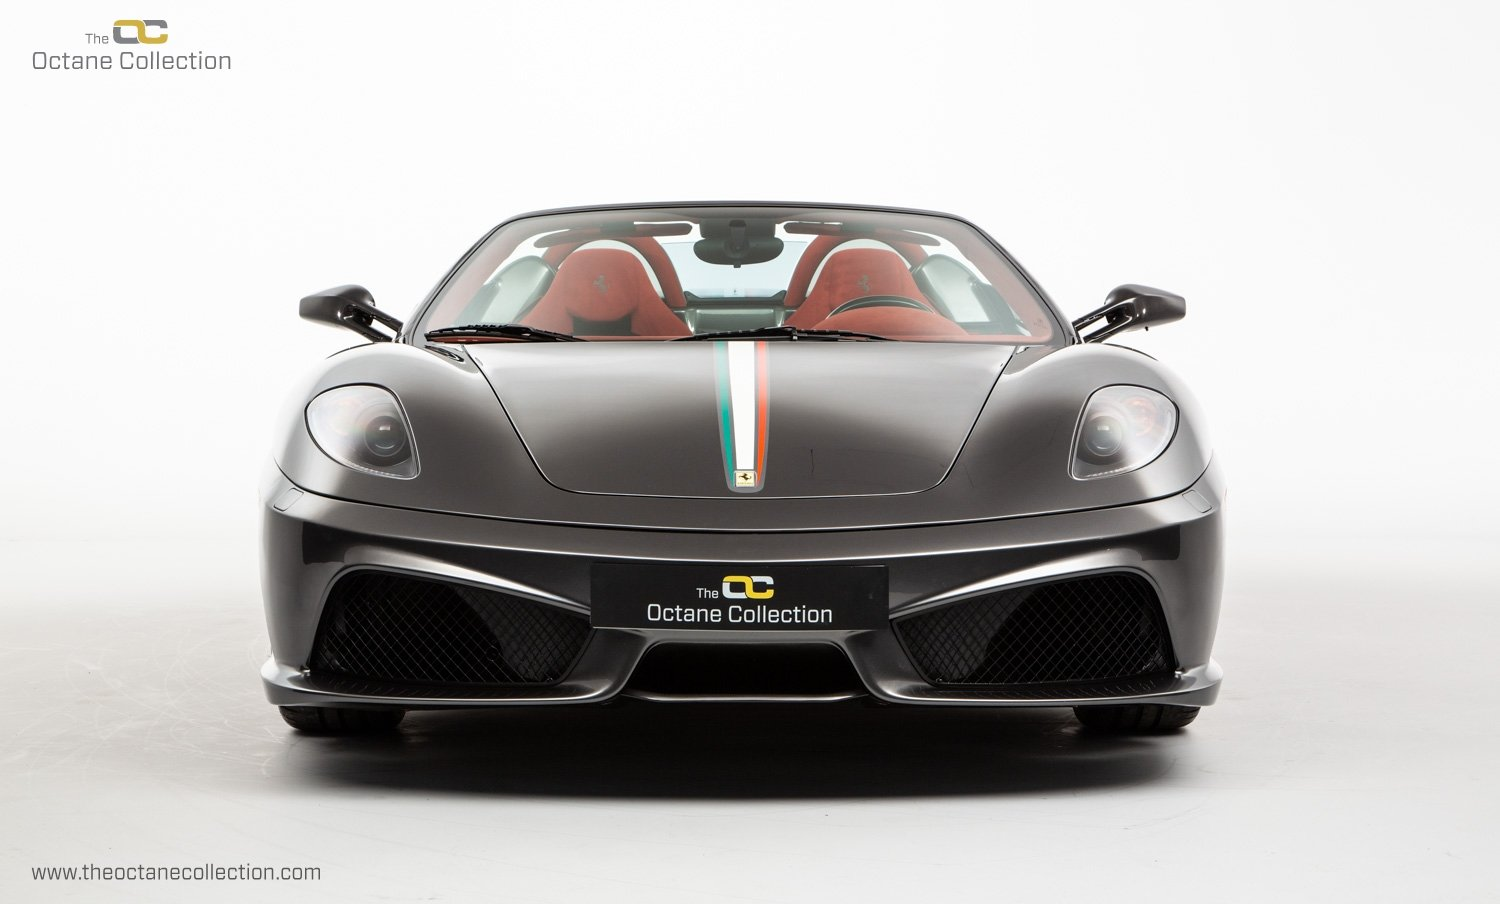 2009 FERRARI 16M SCUDERIA // GRIGIO SILVERSTONE // CARBON FIBRE P For Sale (picture 2 of 20)